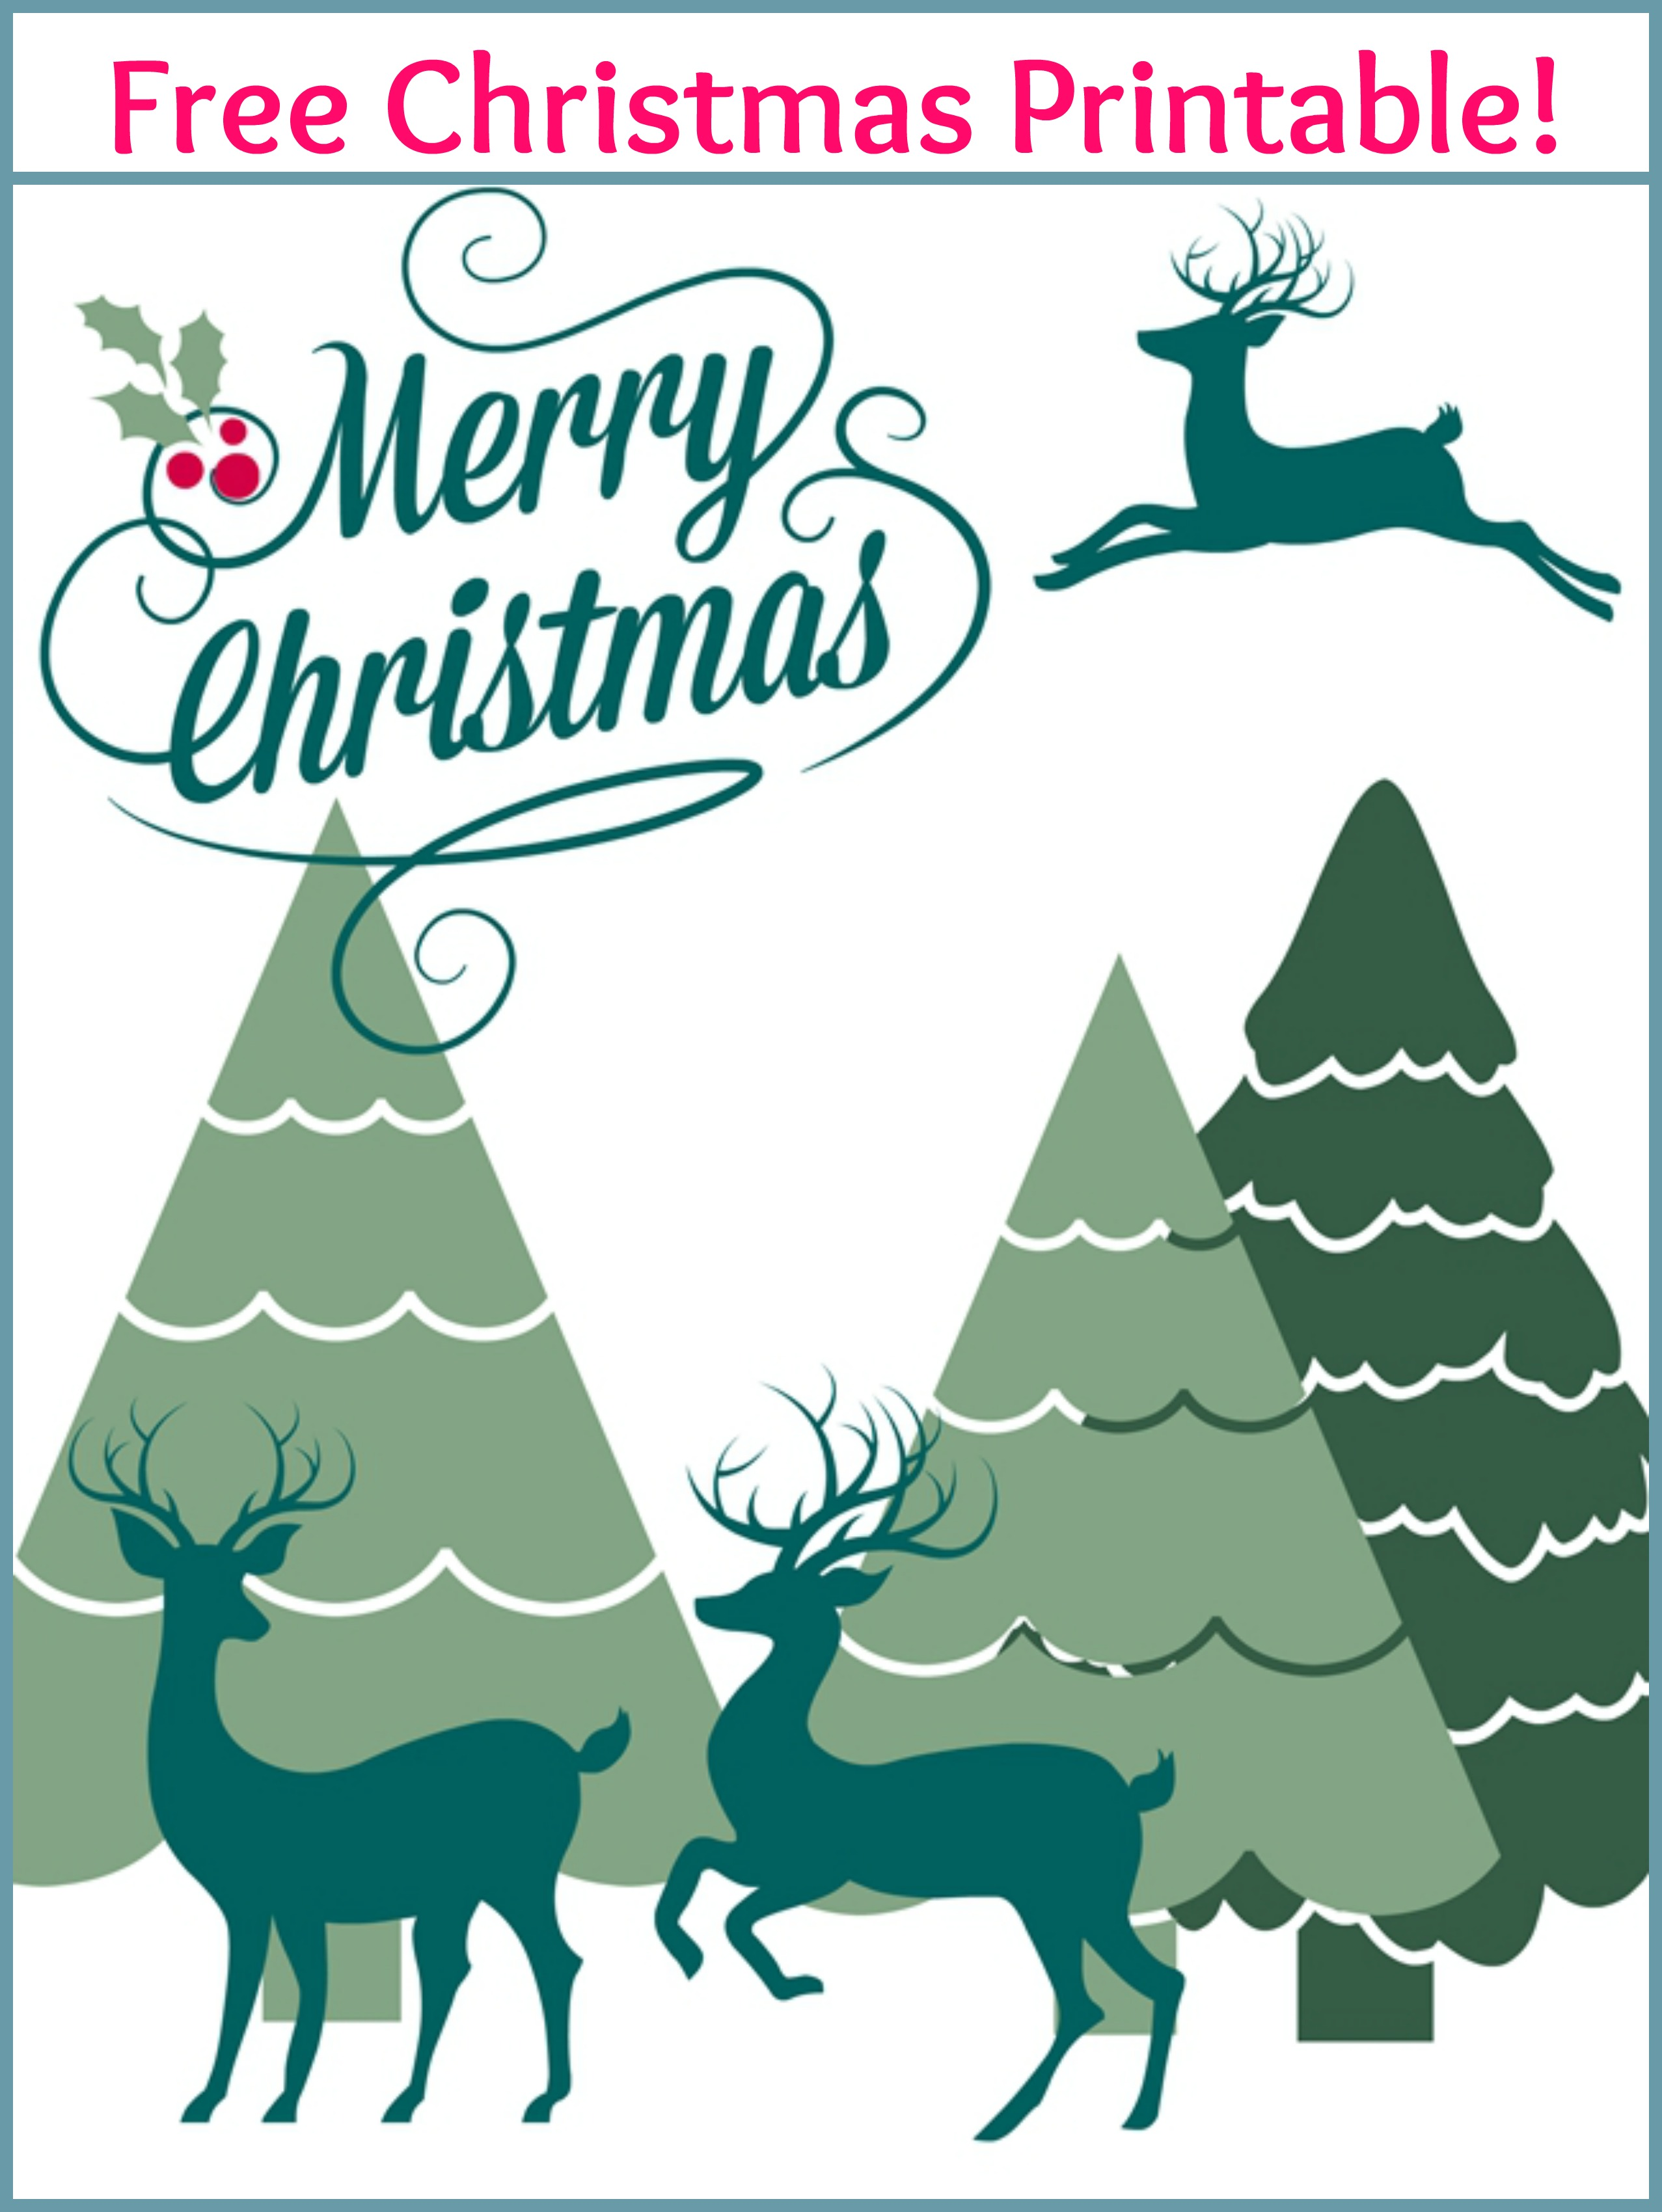 Merry Christmas Free Printable - Live Creatively Inspired